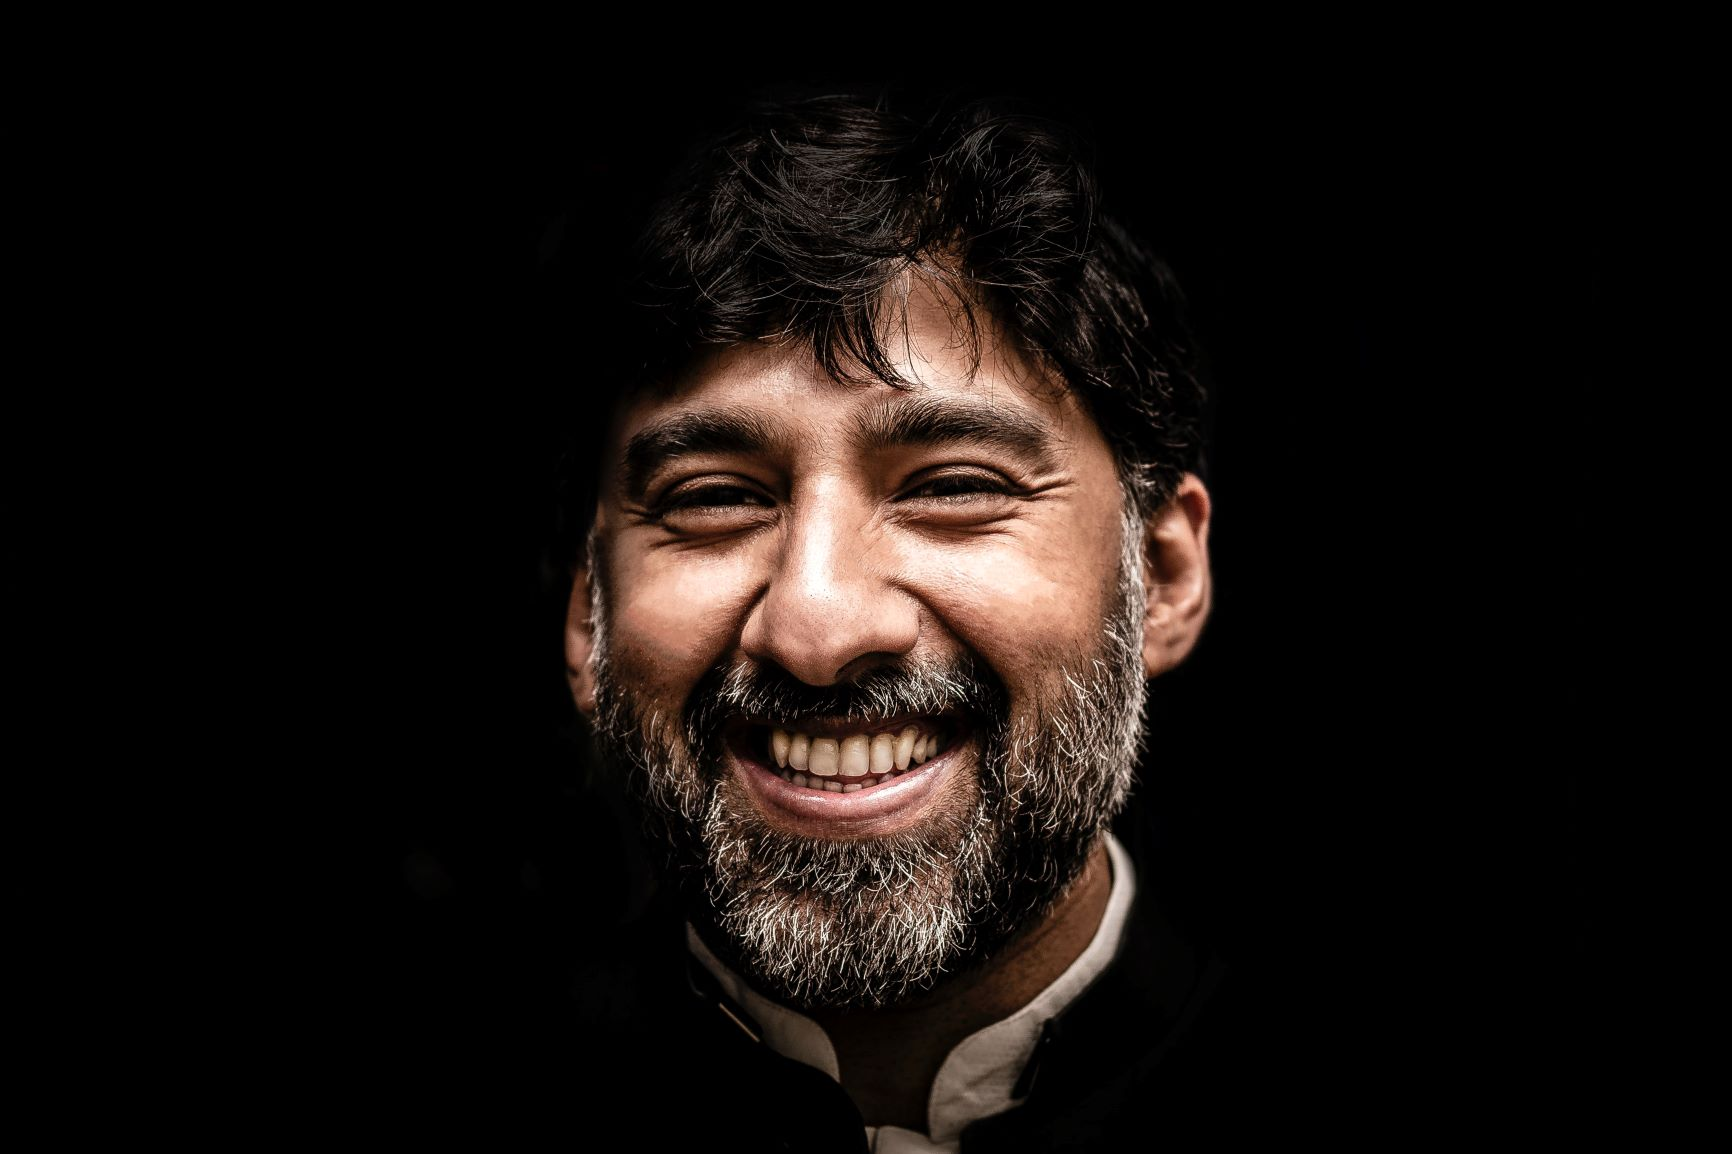 Man smiling with black background